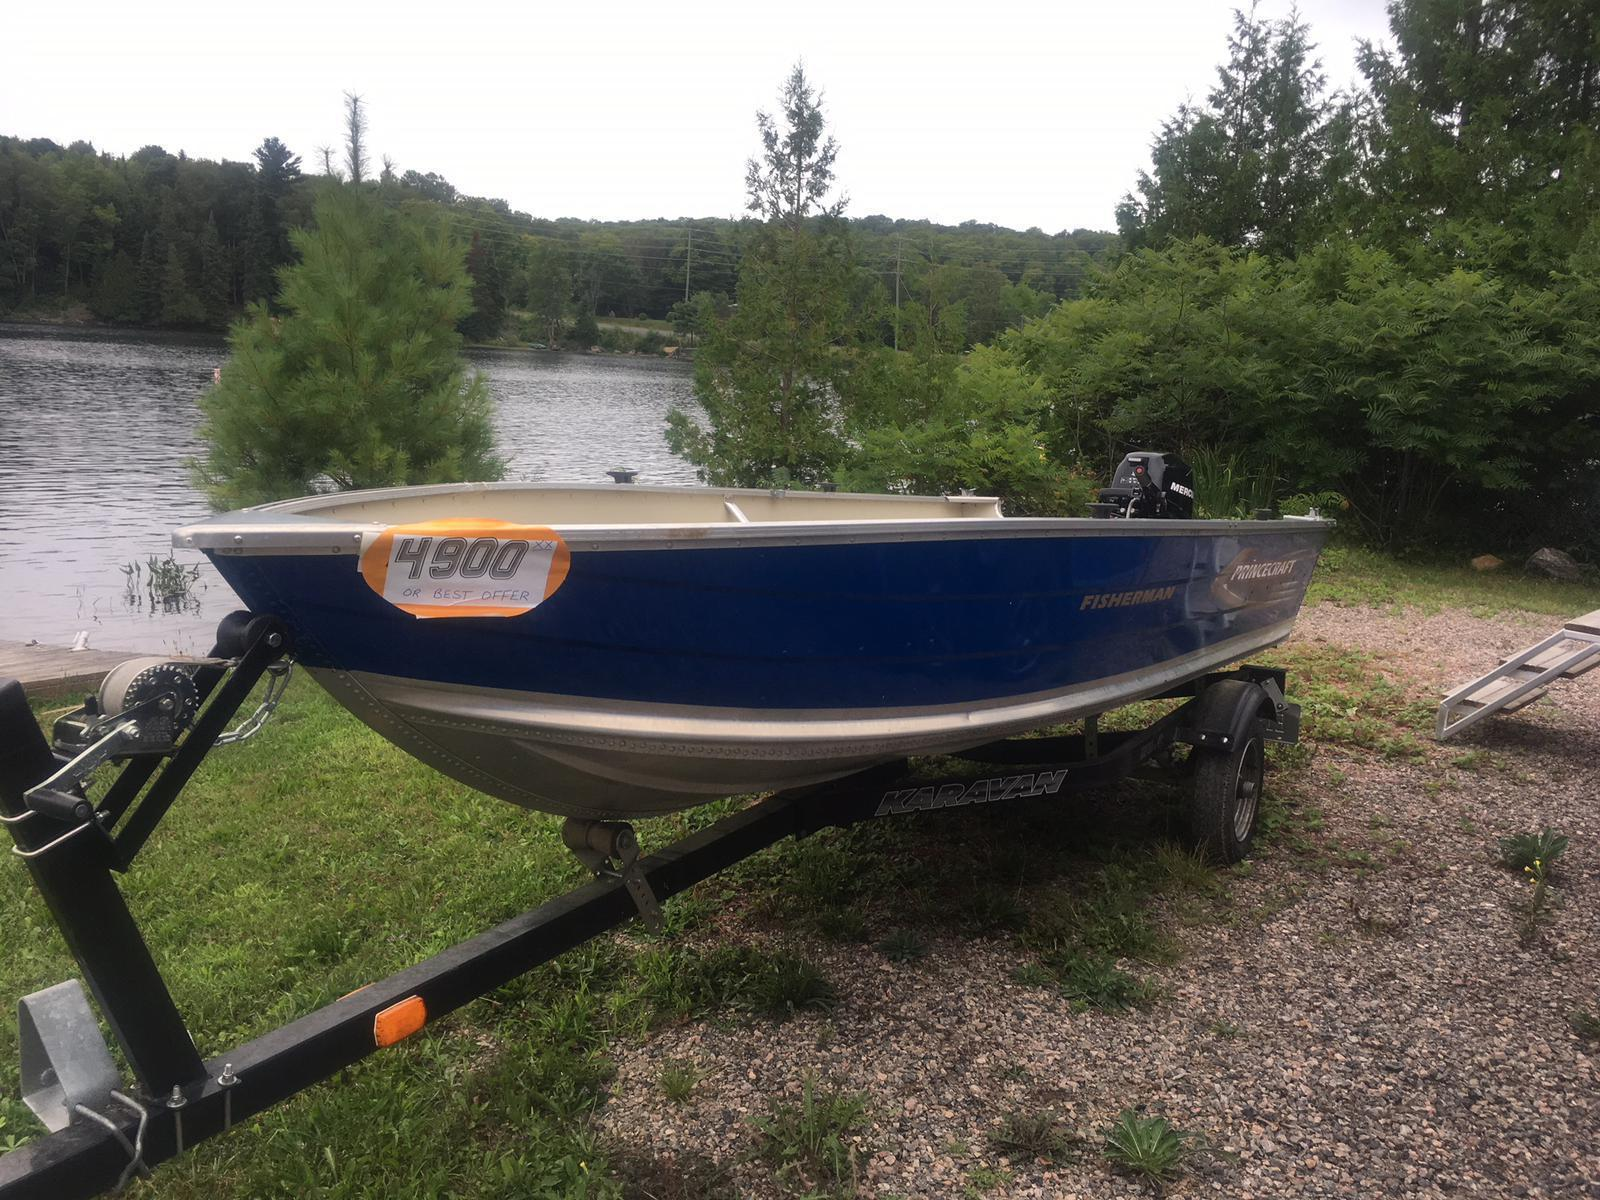 2007 PRINCECRAFT FISHERMAN for sale